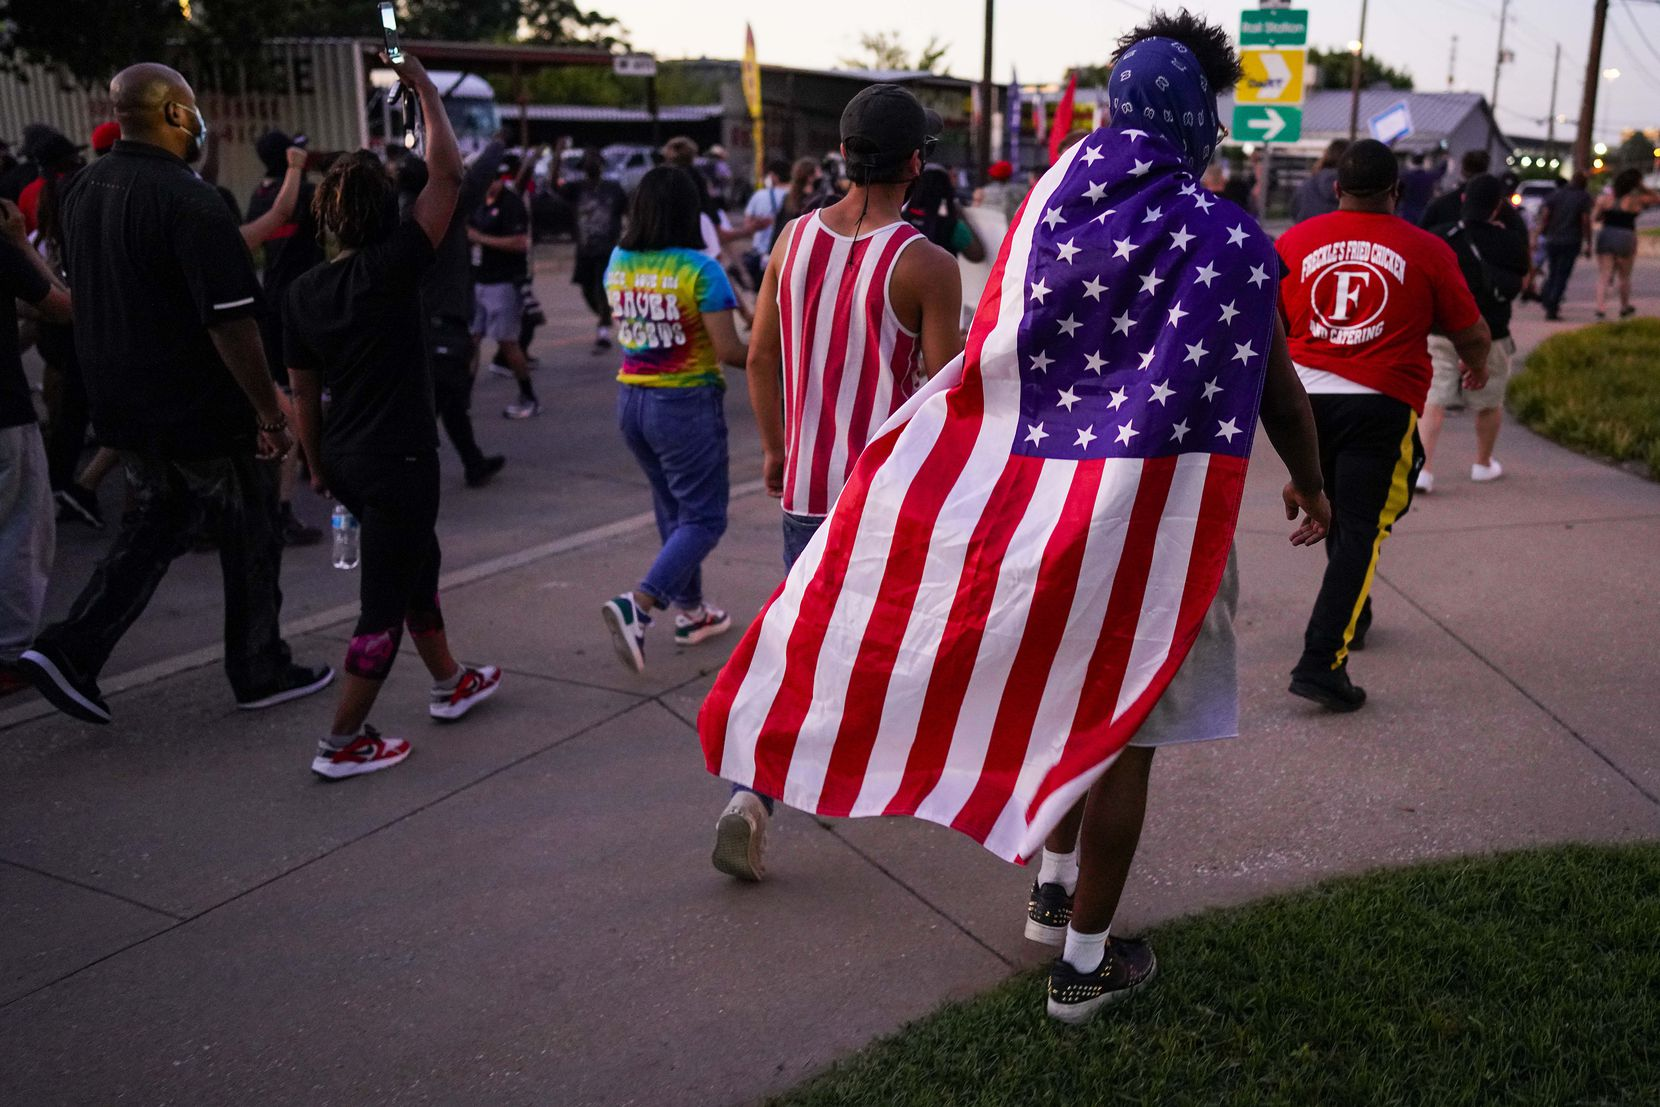 Protesters begin a march against police brutality as they depart a rally at the Dallas Police Headquarters on Friday, May 29, 2020, in Dallas.